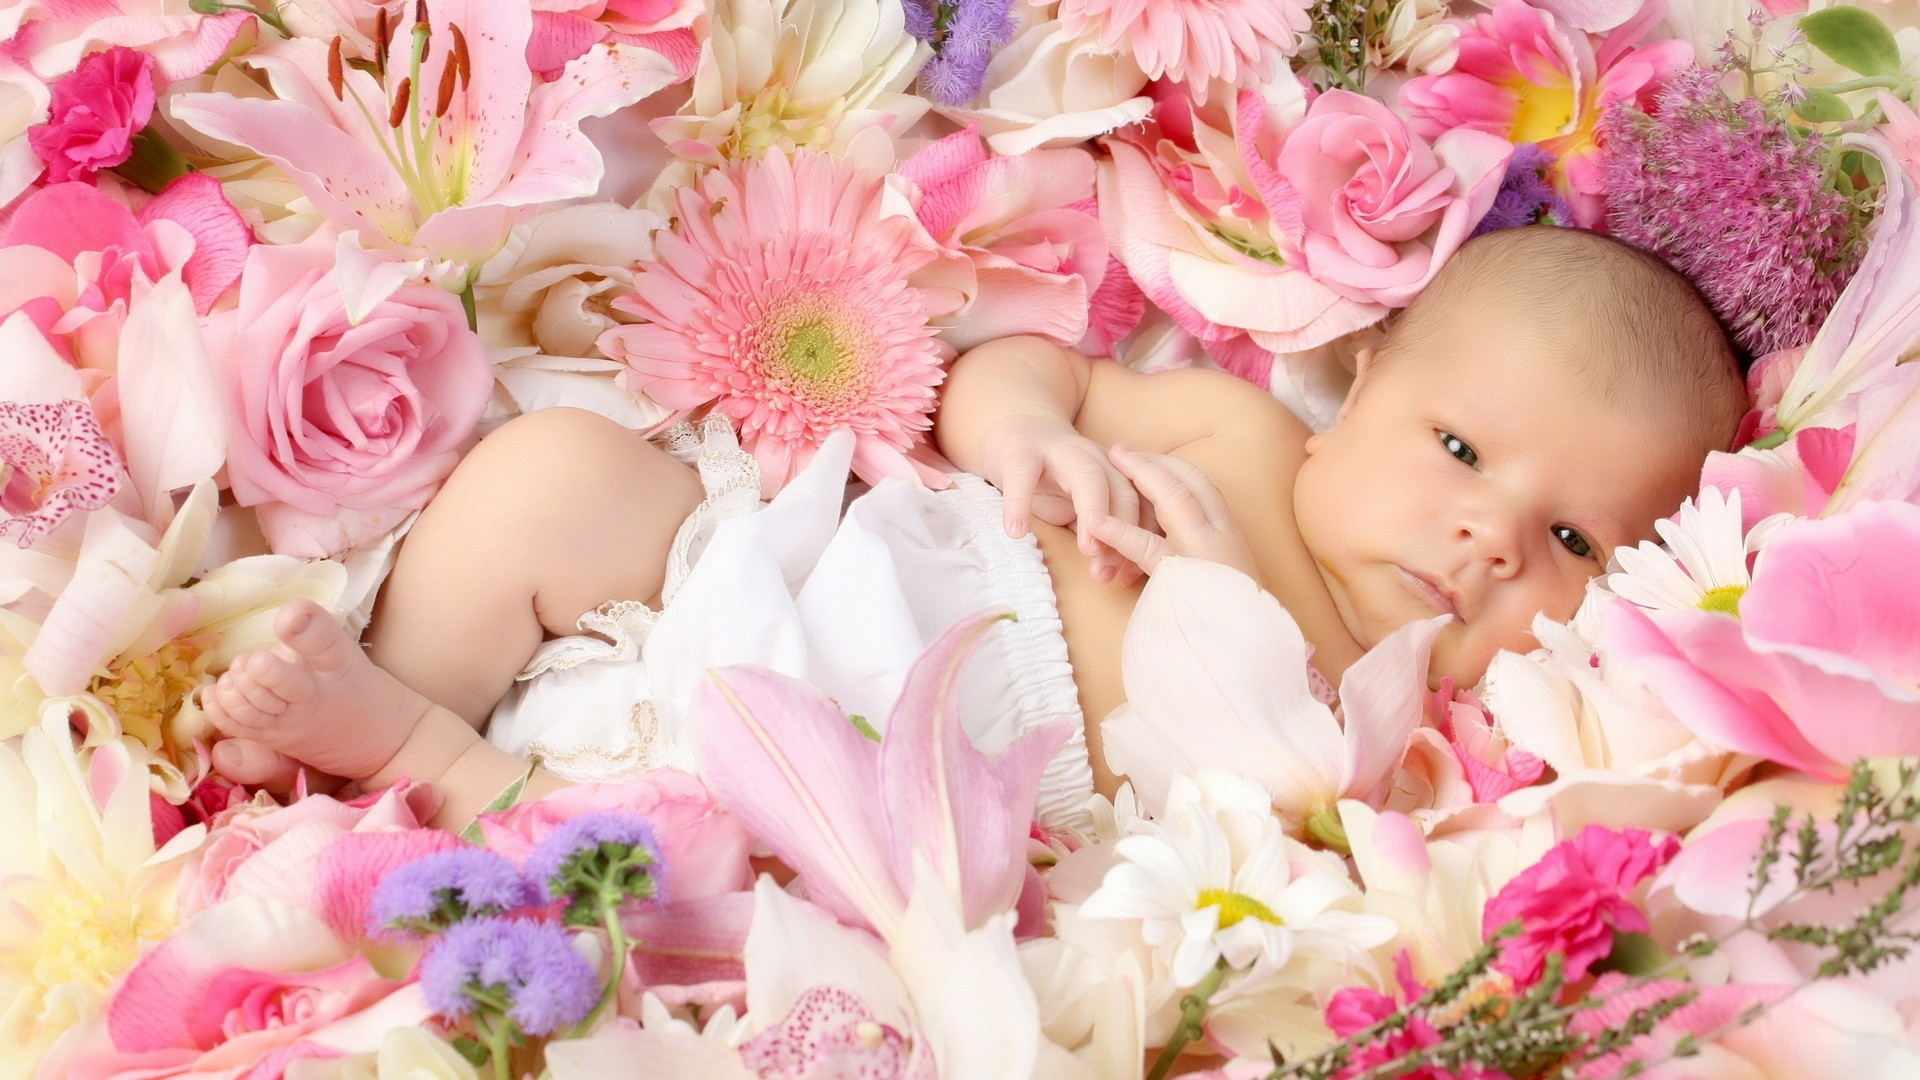 Res: 1920x1080, Baby With Flower Wallpaper Wallpaper